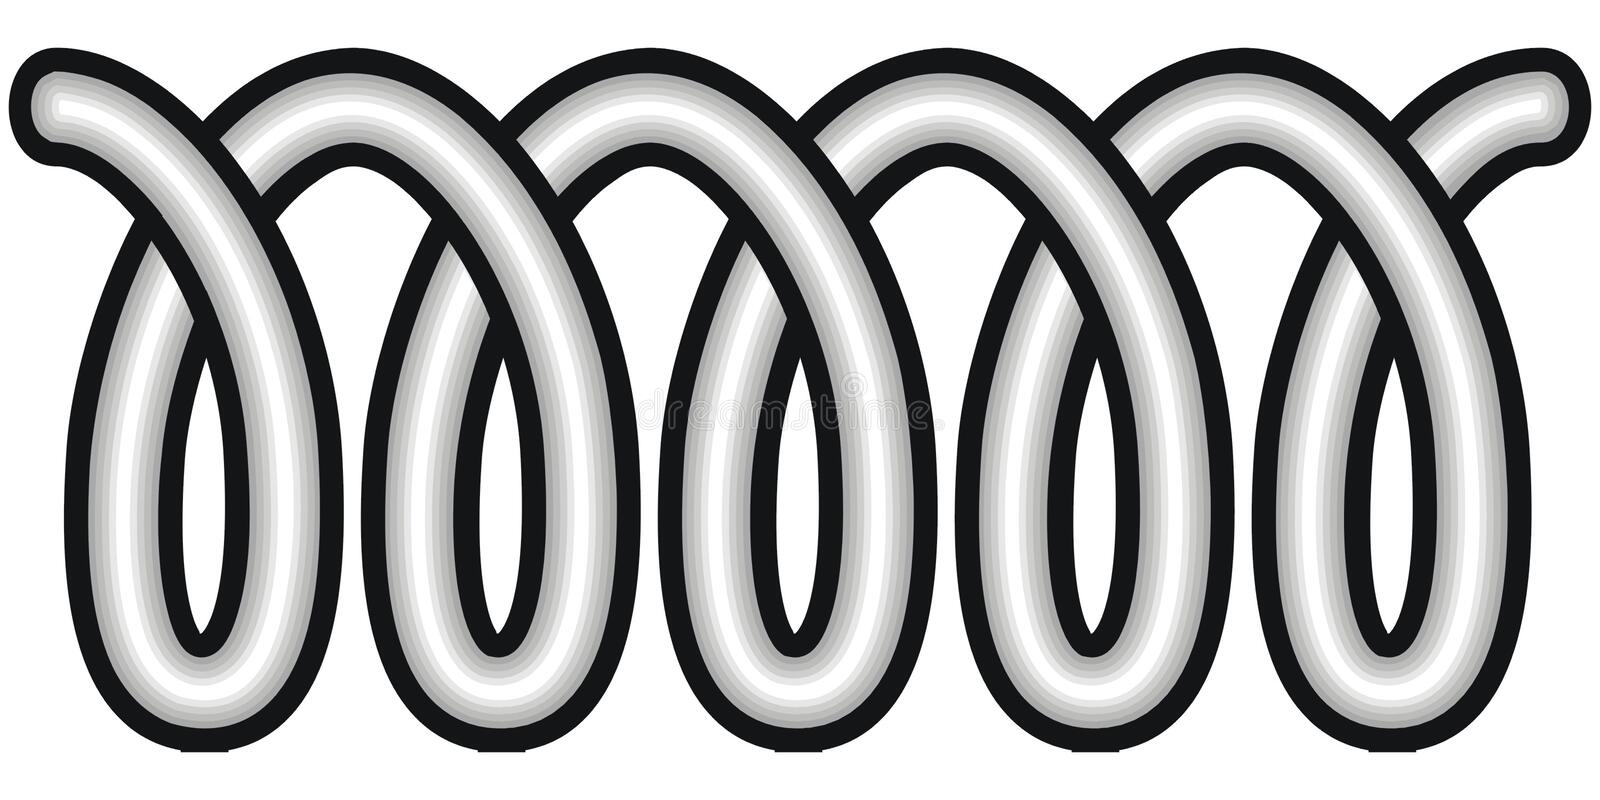 Coil. Art illustration in black and white: a coil stock illustration